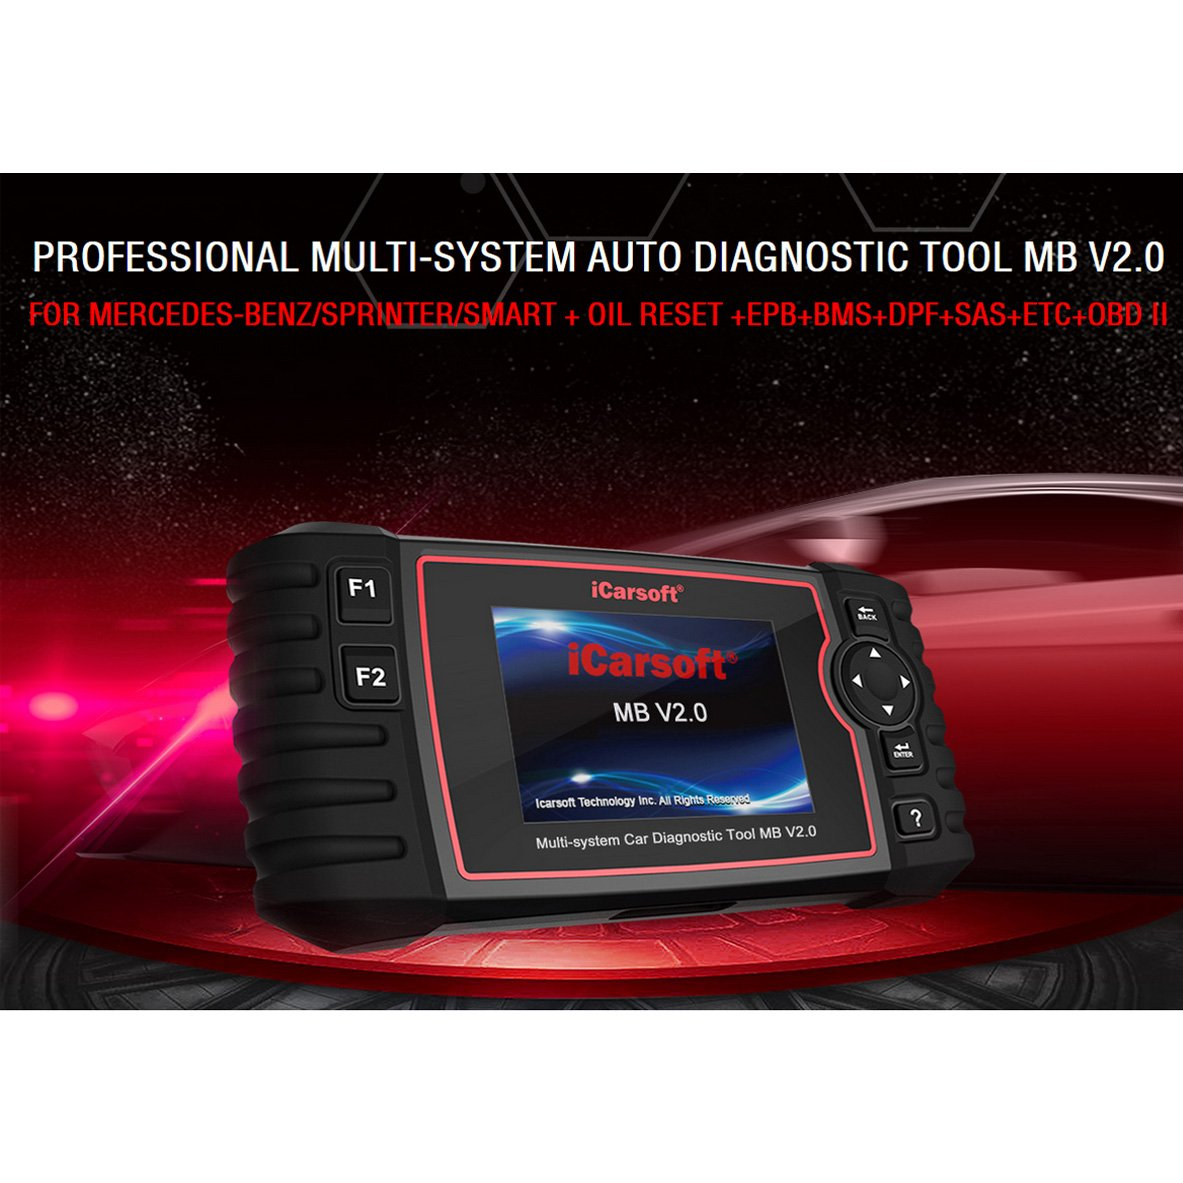 iCarsoft Professional Multi-System Auto Diagnostic Tool MB V2 0 for  Mercedes-Benz/Sprinter/Smart, The Update Version i980